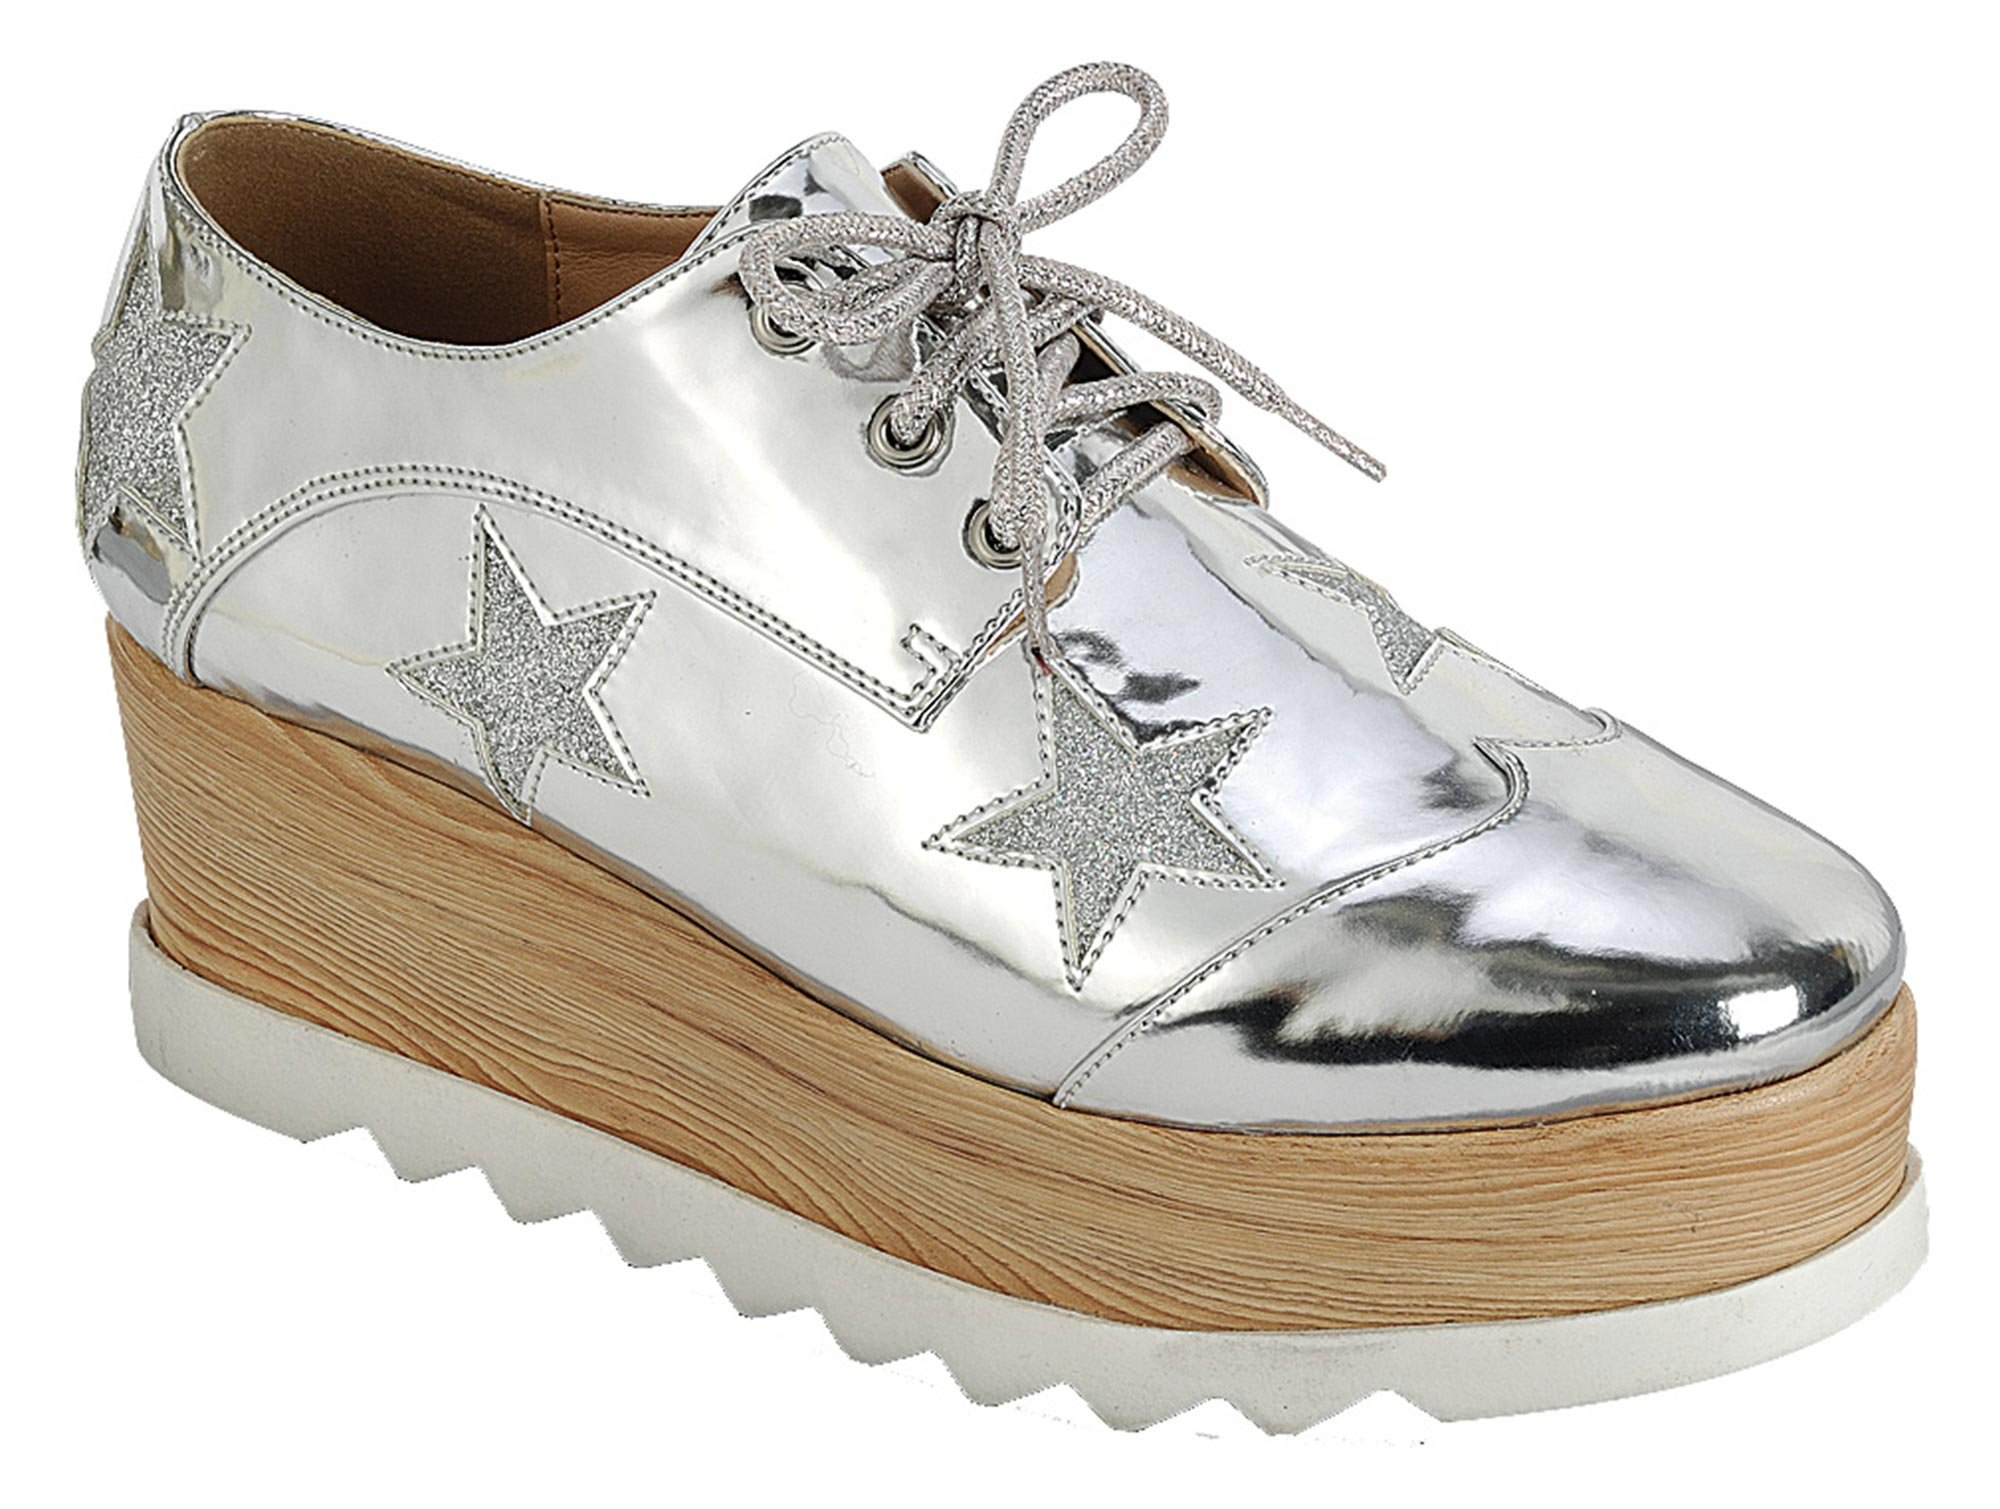 Best Silver Oxford Platform Wedge Heel Double Stacked Creeper Sneaker Round Toe Wing Tip Lace up Dressy Business Casual Shoe College Gift Idea for Sale Women Teen Girl (Size 8, Silver)